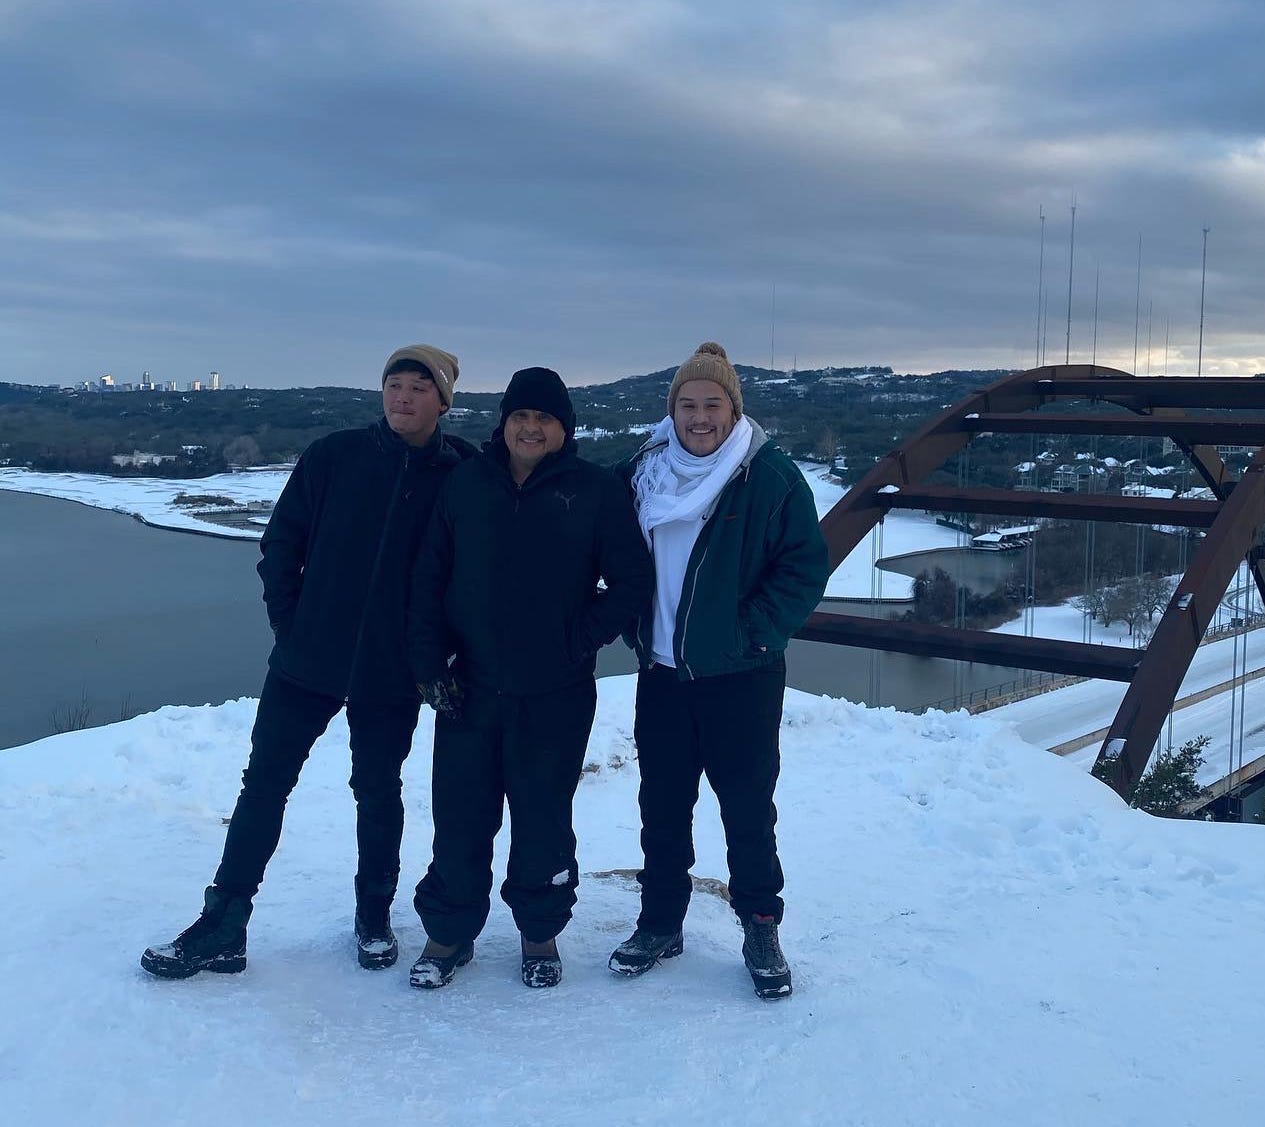 Left to right, Kevin, Ivan and Alan Ramirez during Austin's February snow and ice storm.